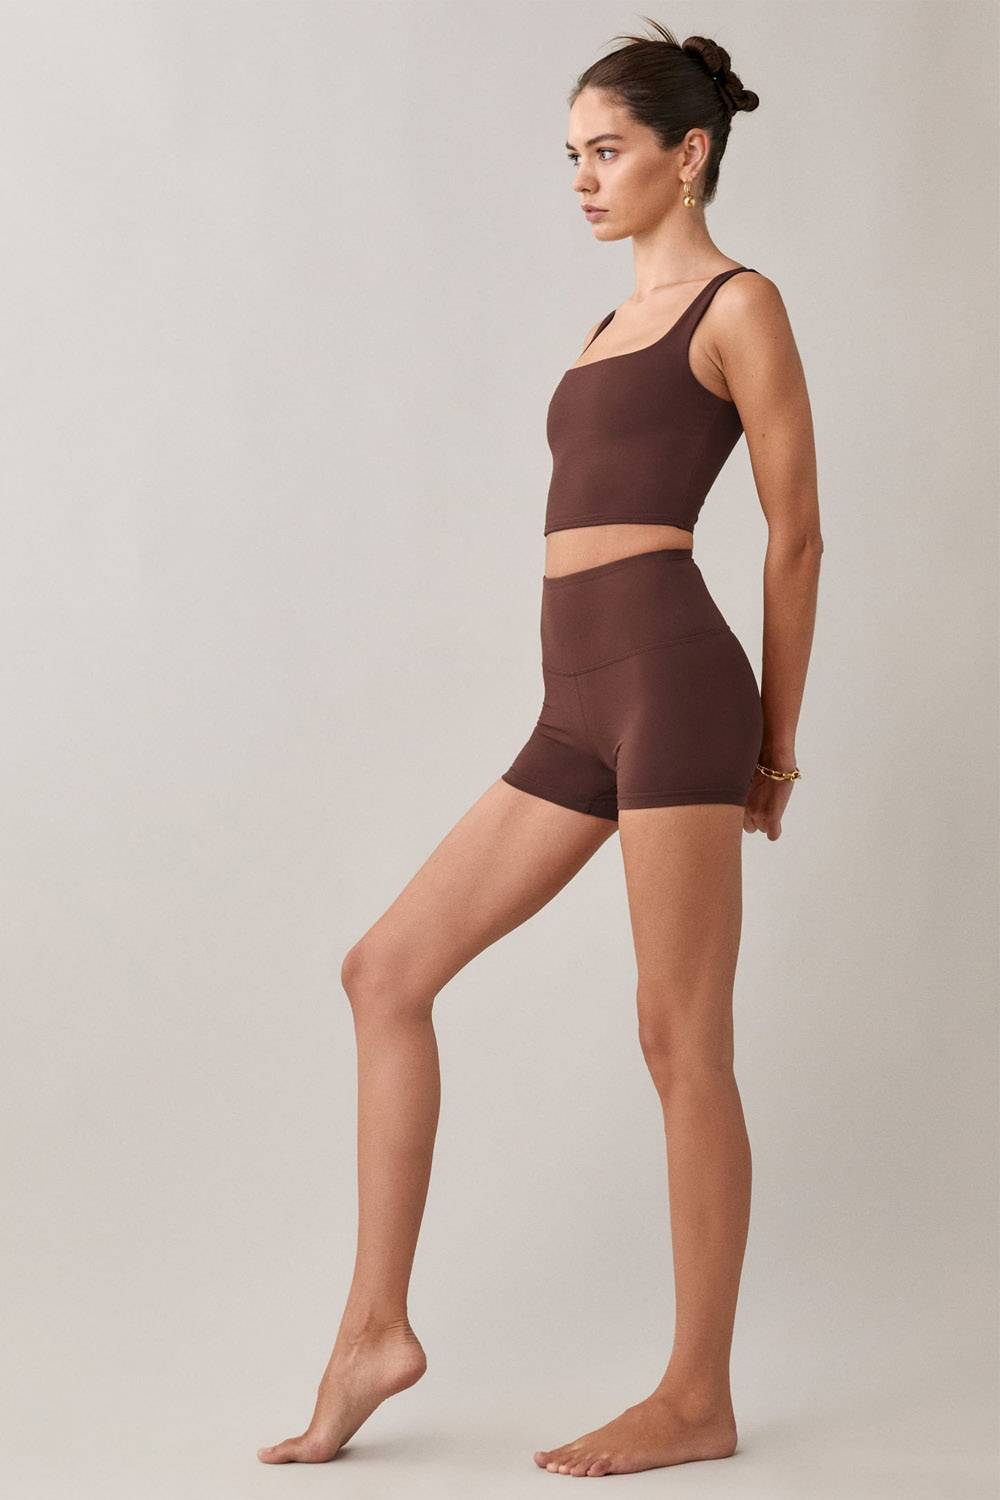 reformation activewear made in usa